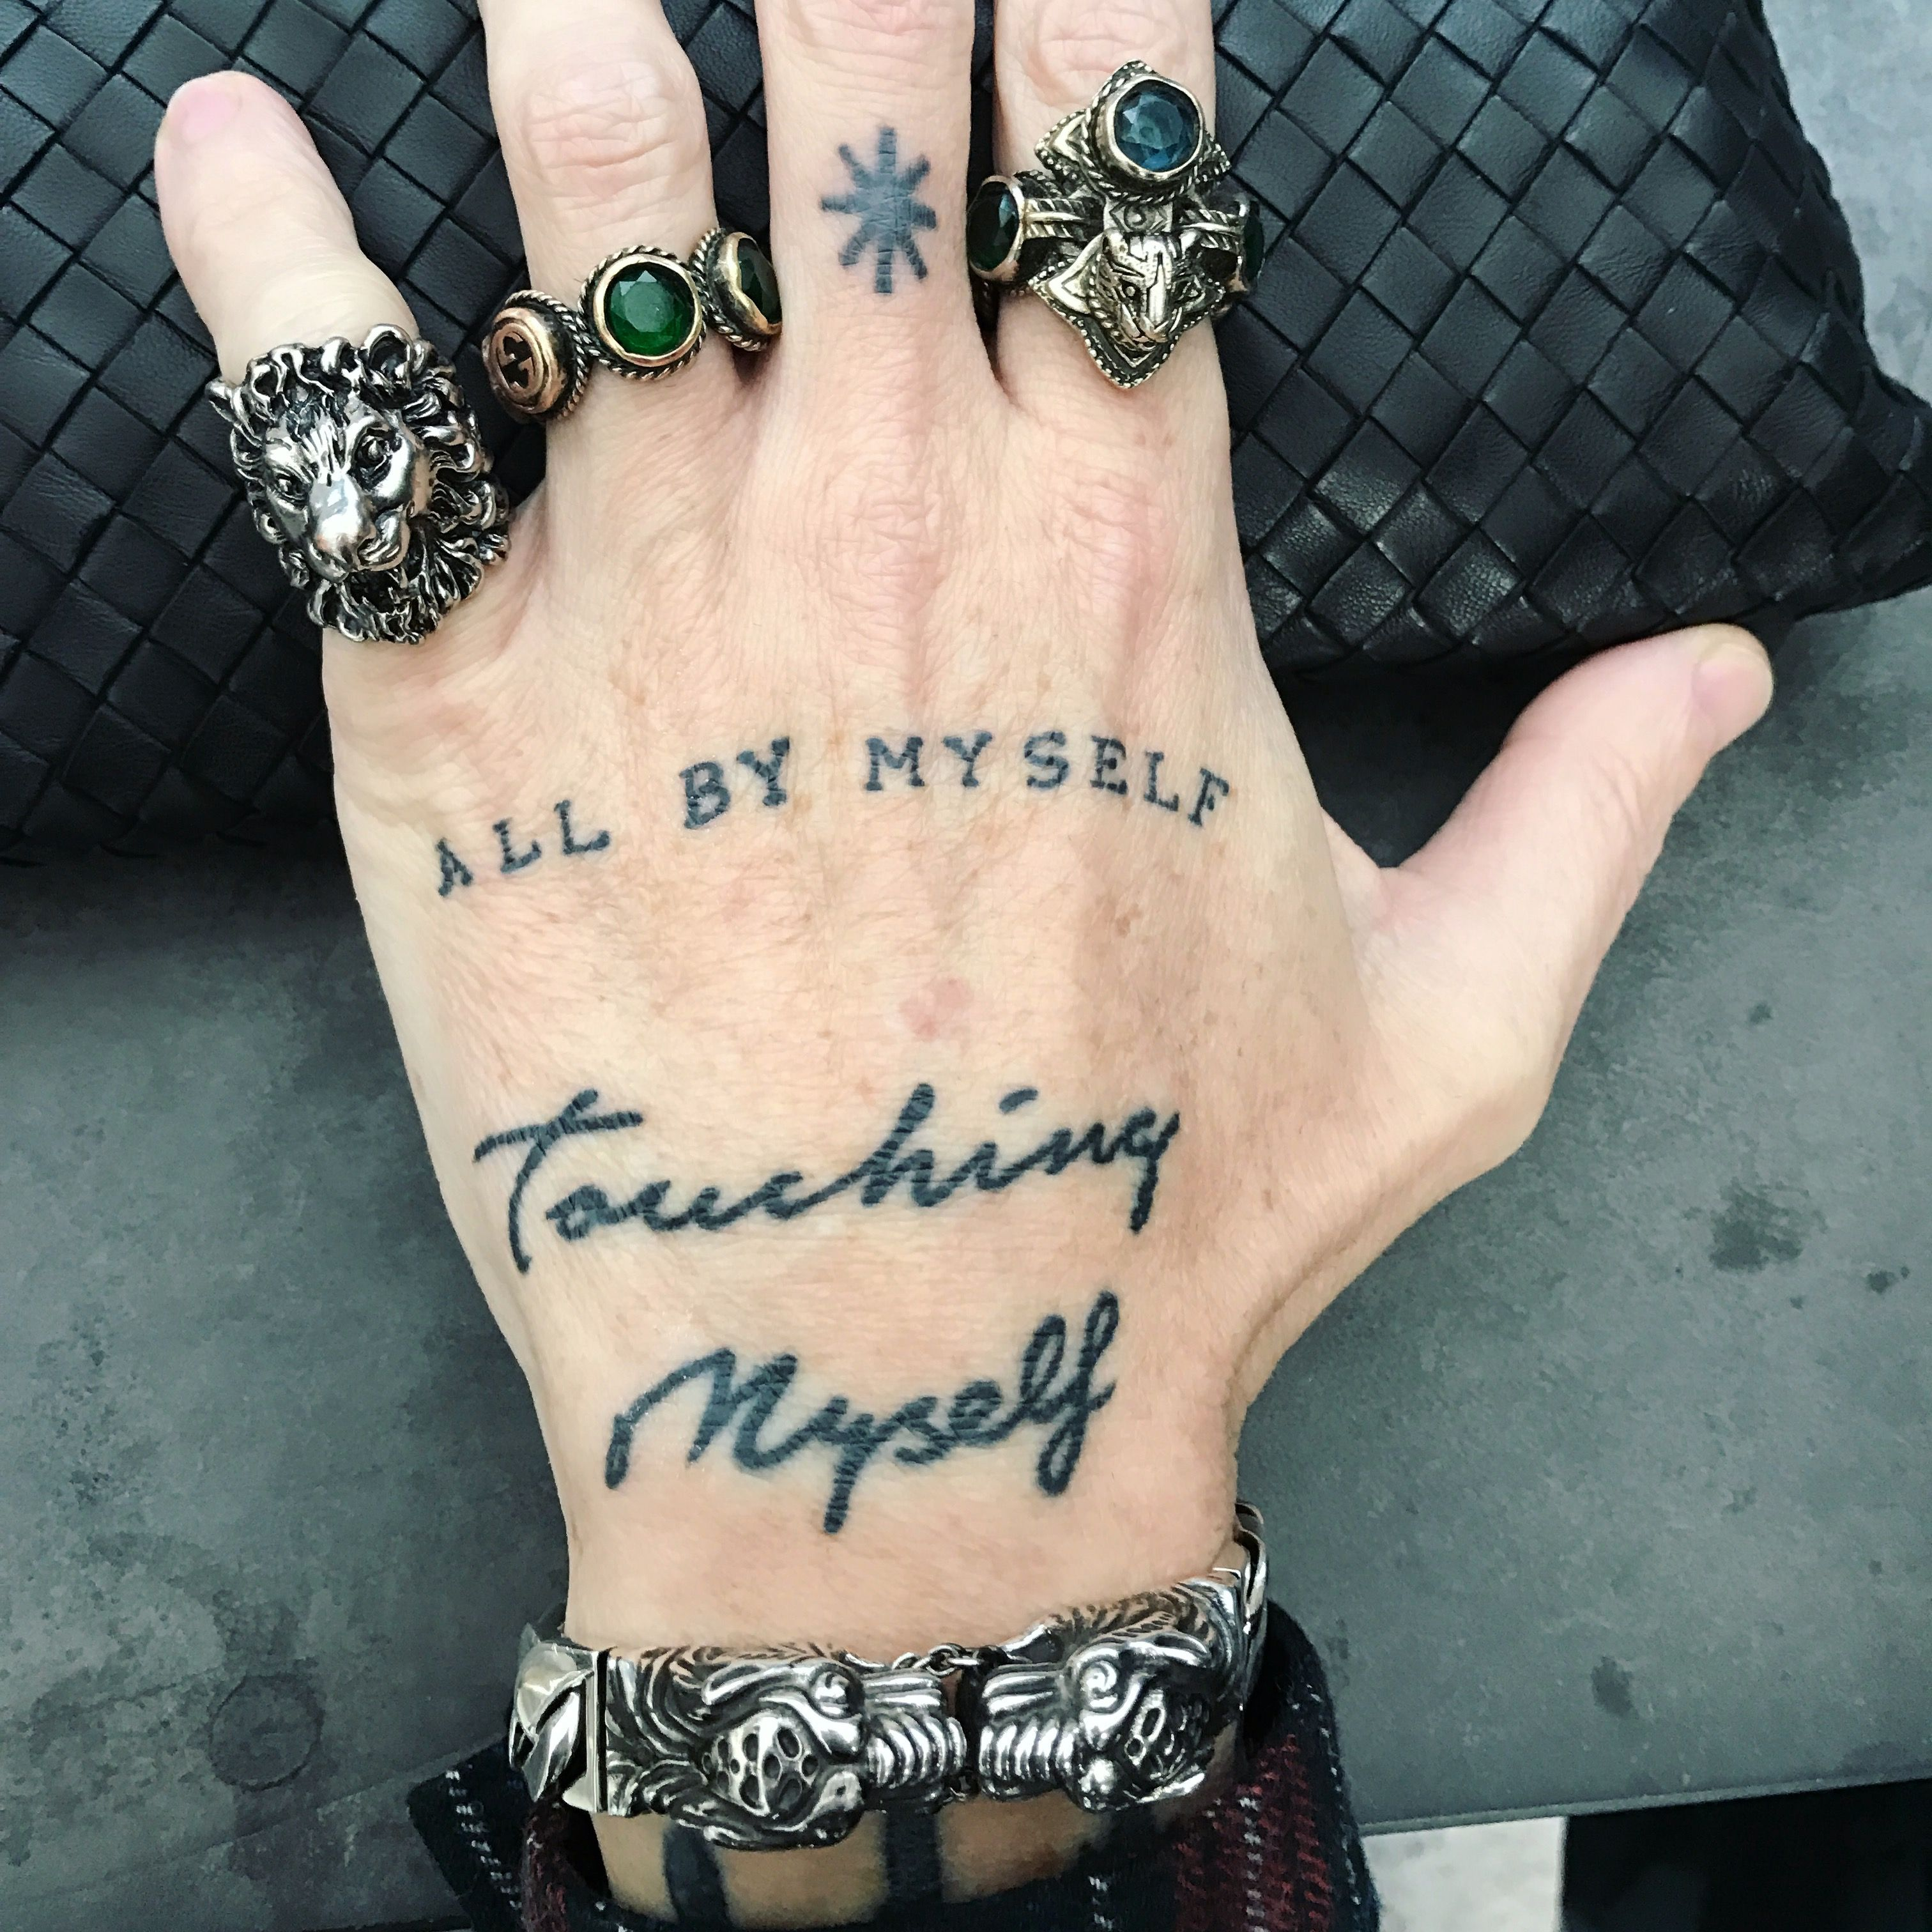 Gucci Rings Men Fashion Tattoos Gucci Rings Tattoos Tattoo Designs